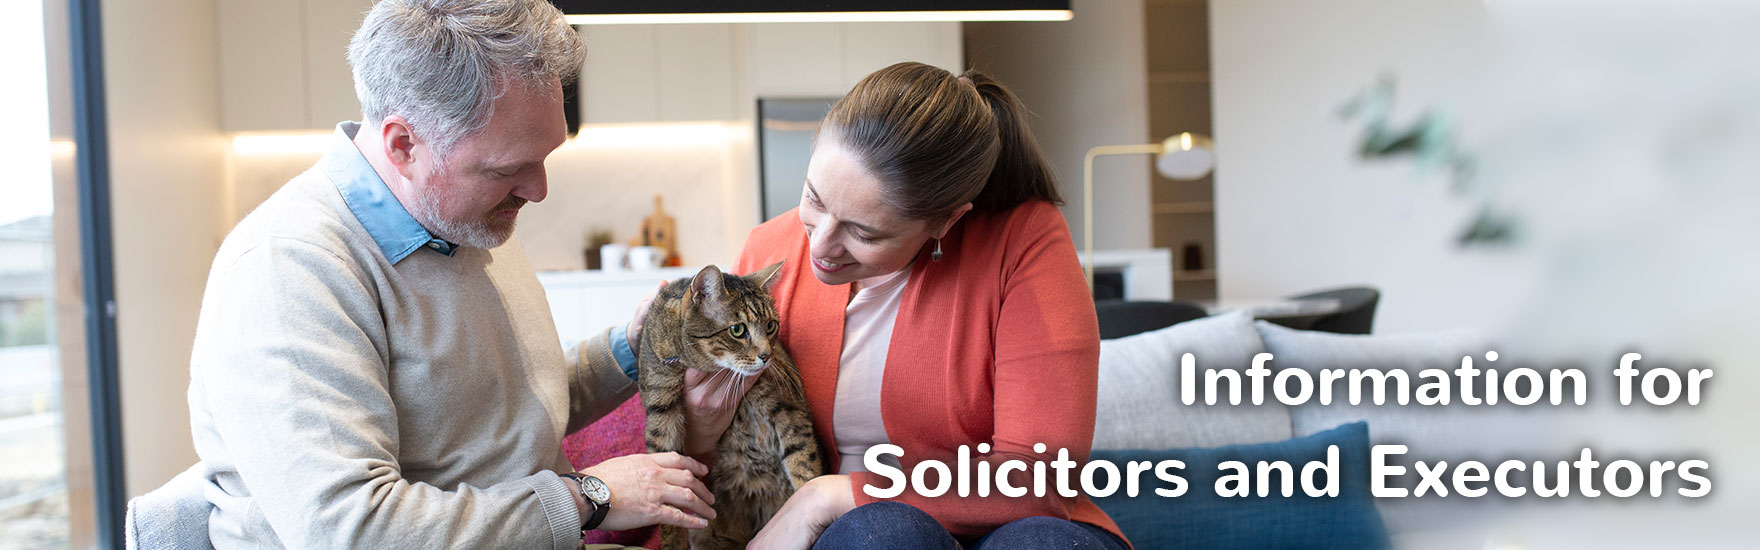 Information for Solicitors and Executors